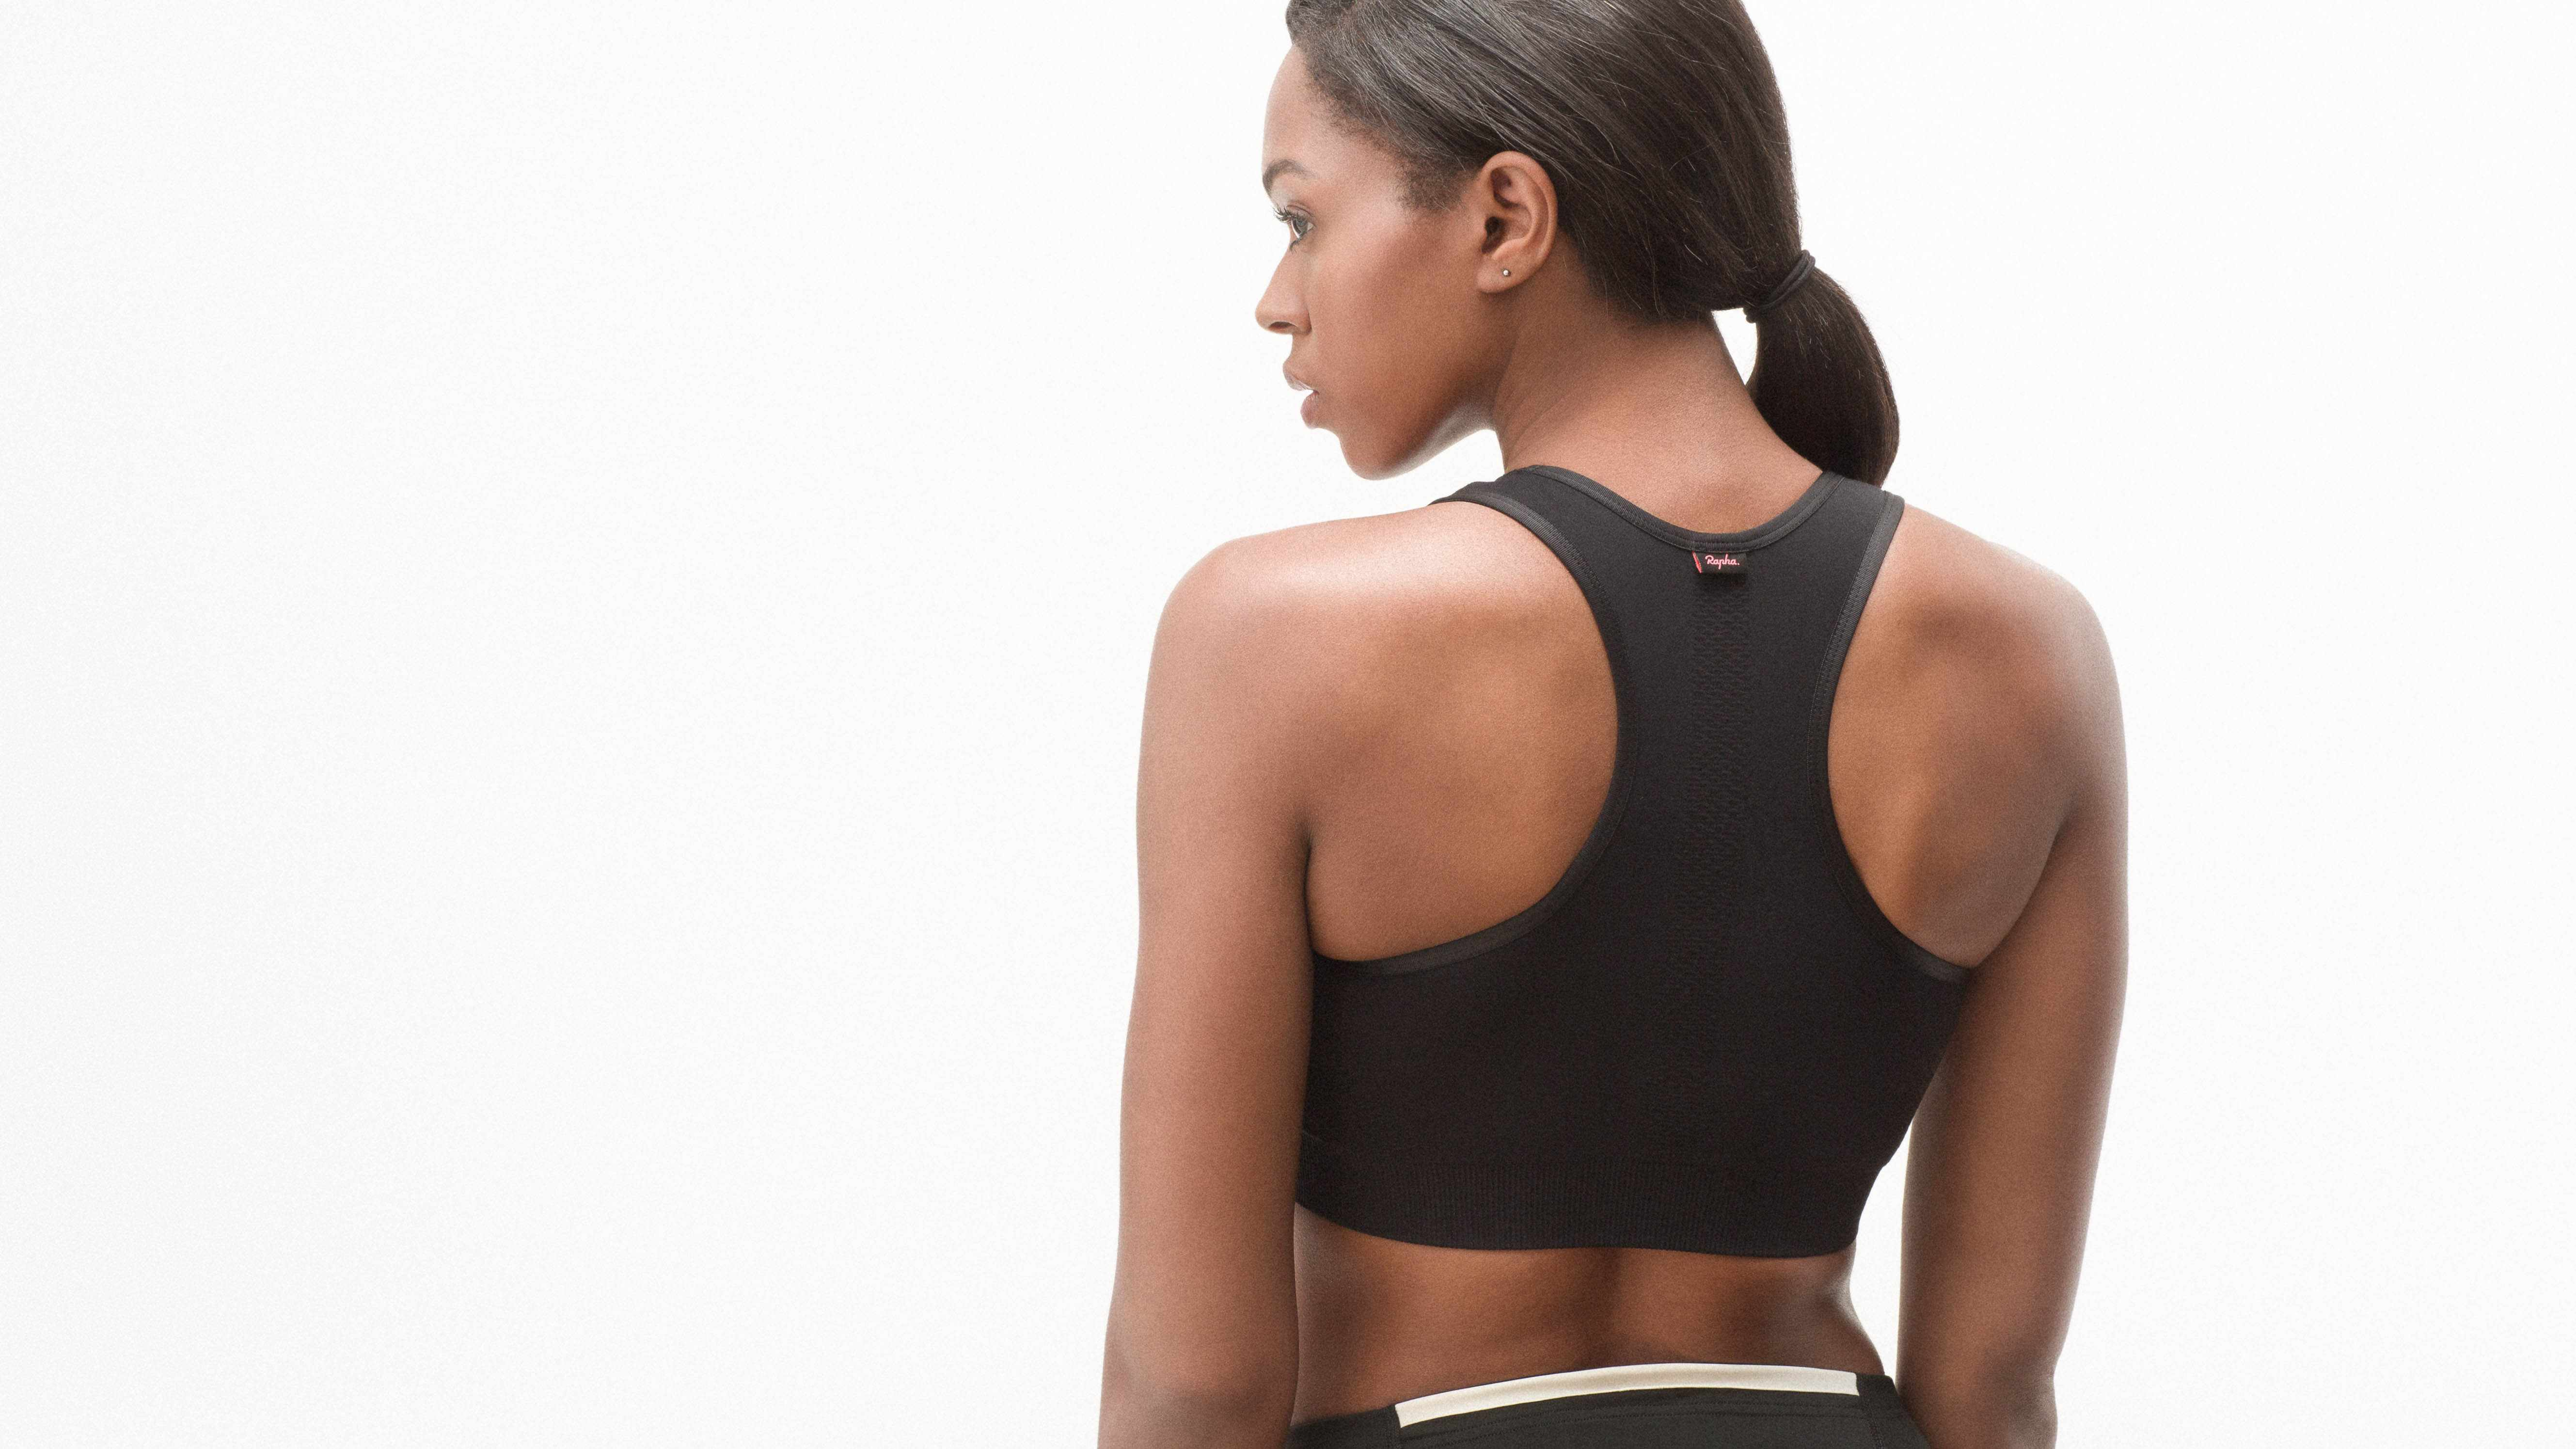 The light support bra has a racerback cut and wide underbust band